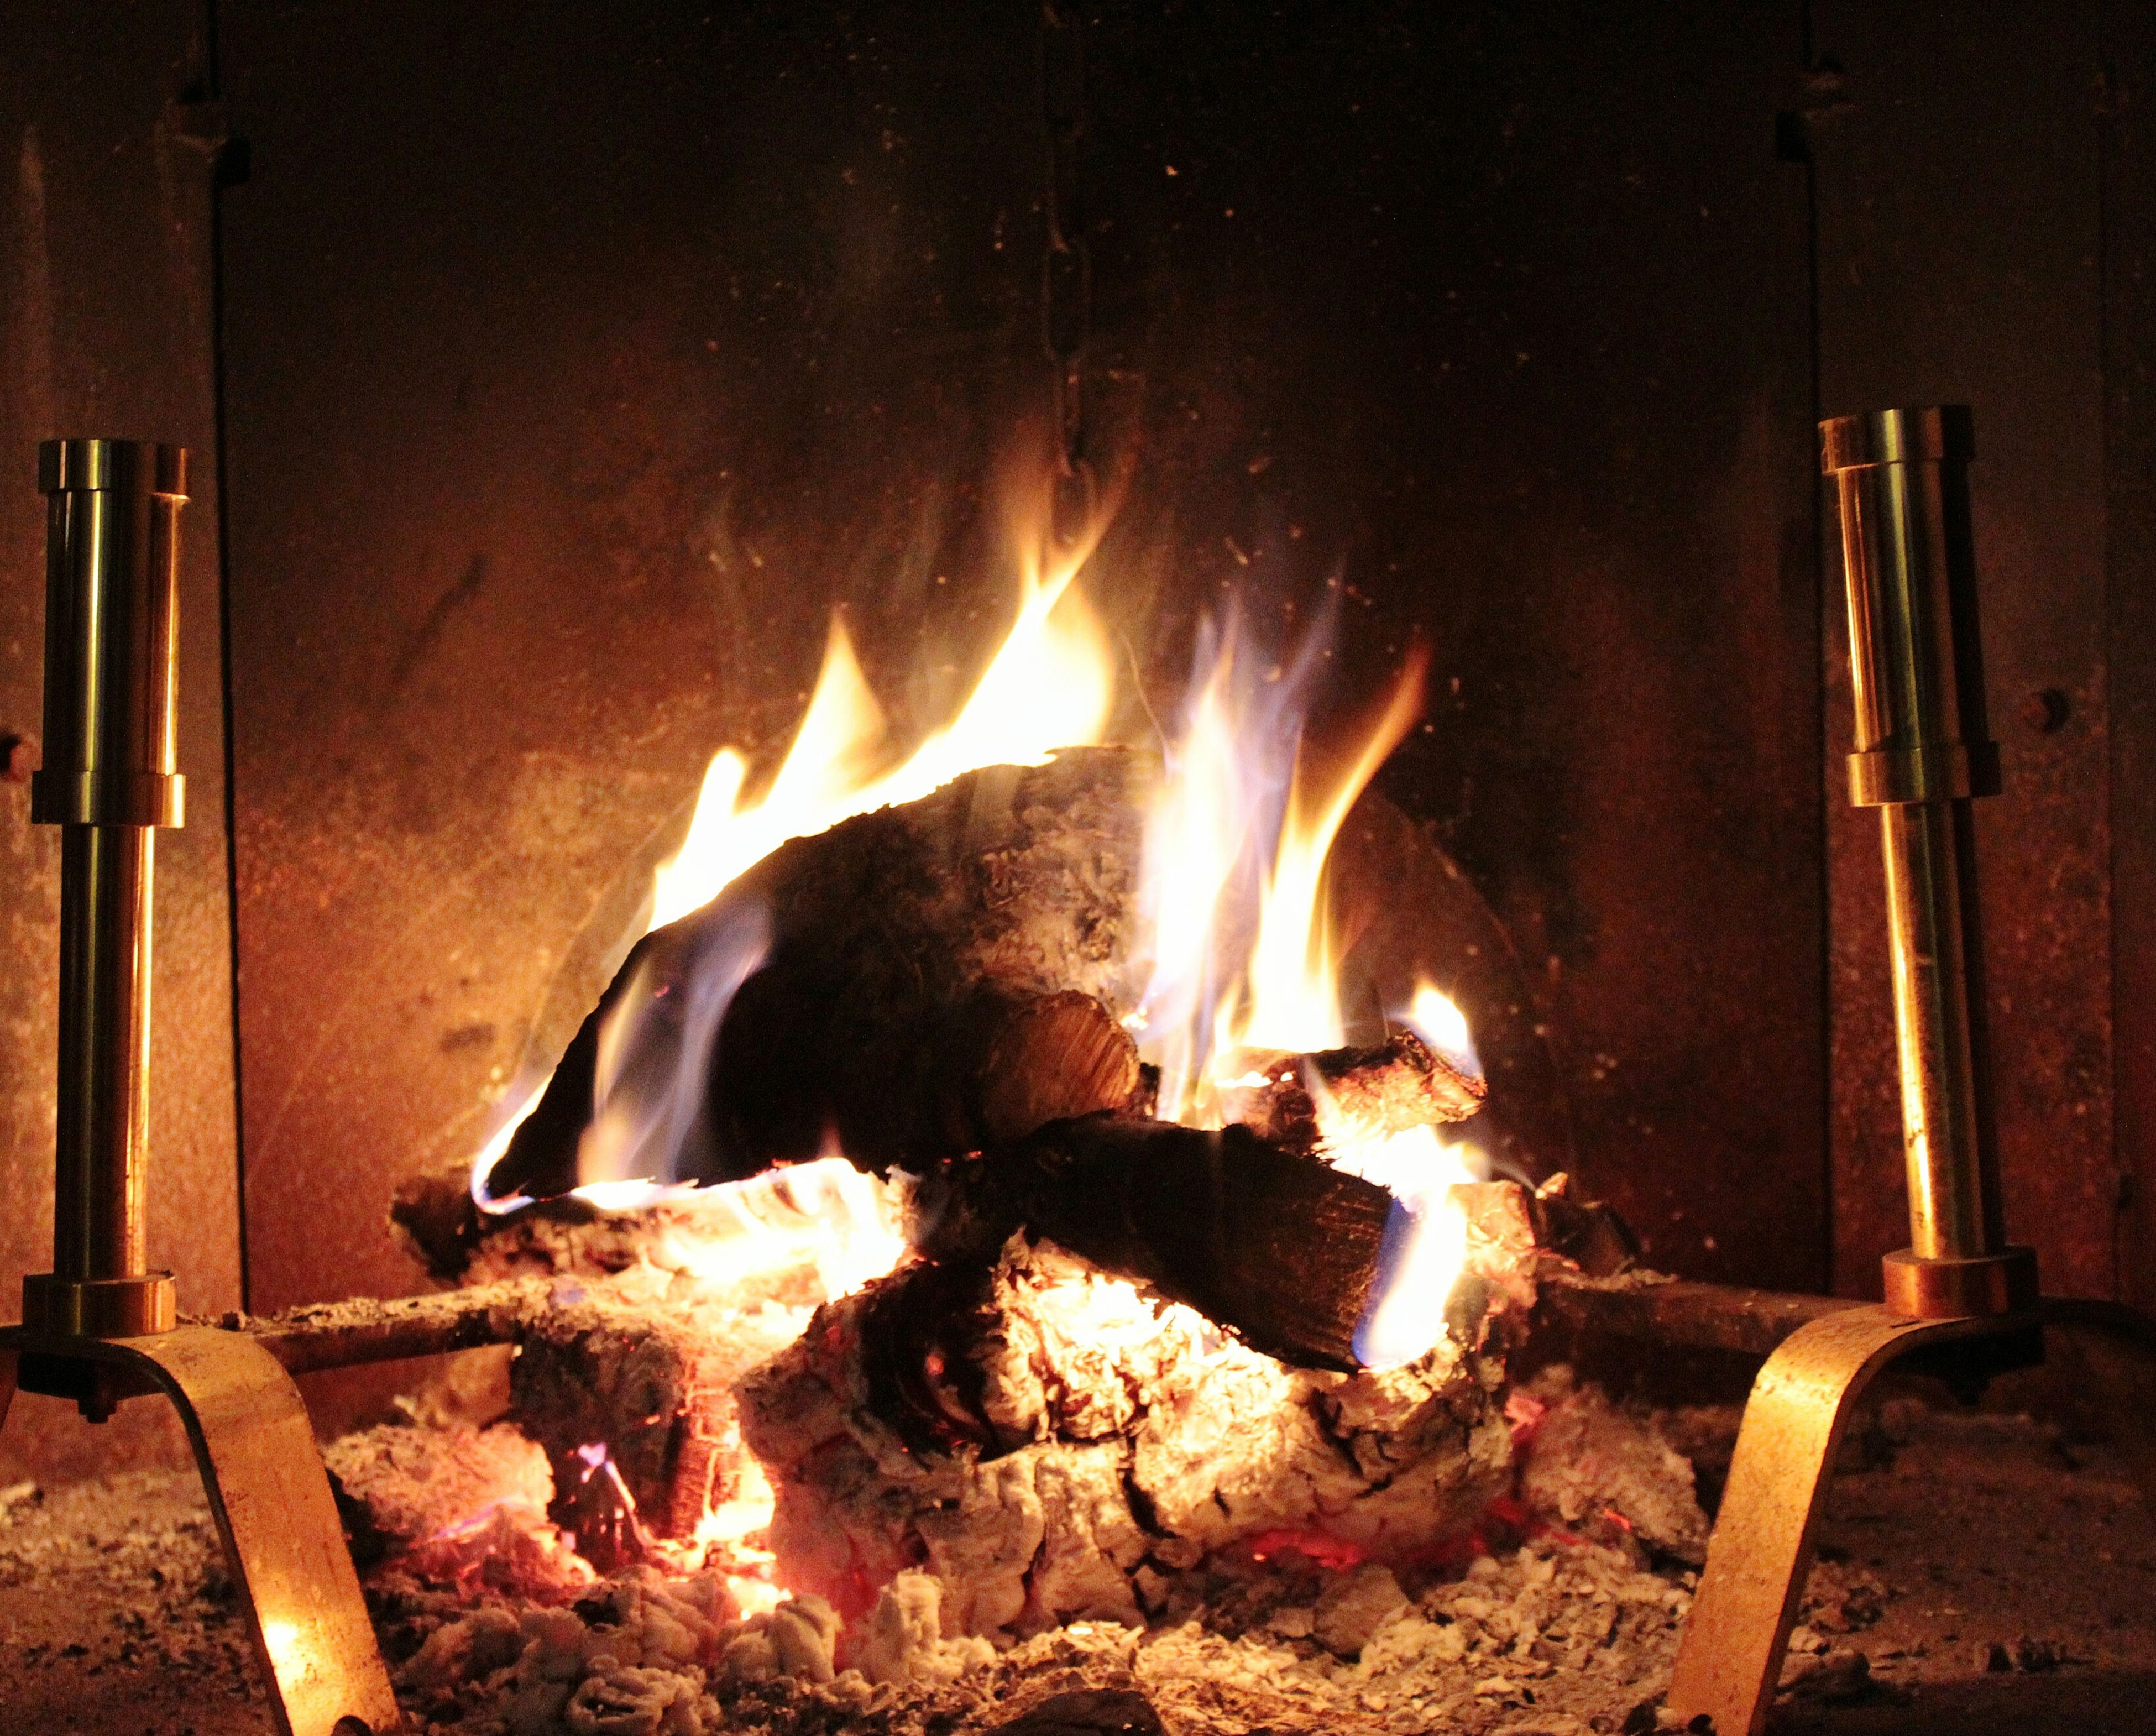 flame, burning, heat - temperature, fire - natural phenomenon, firewood, glowing, night, fire, bonfire, heat, wood - material, close-up, illuminated, fireplace, candle, indoors, no people, lit, campfire, light - natural phenomenon